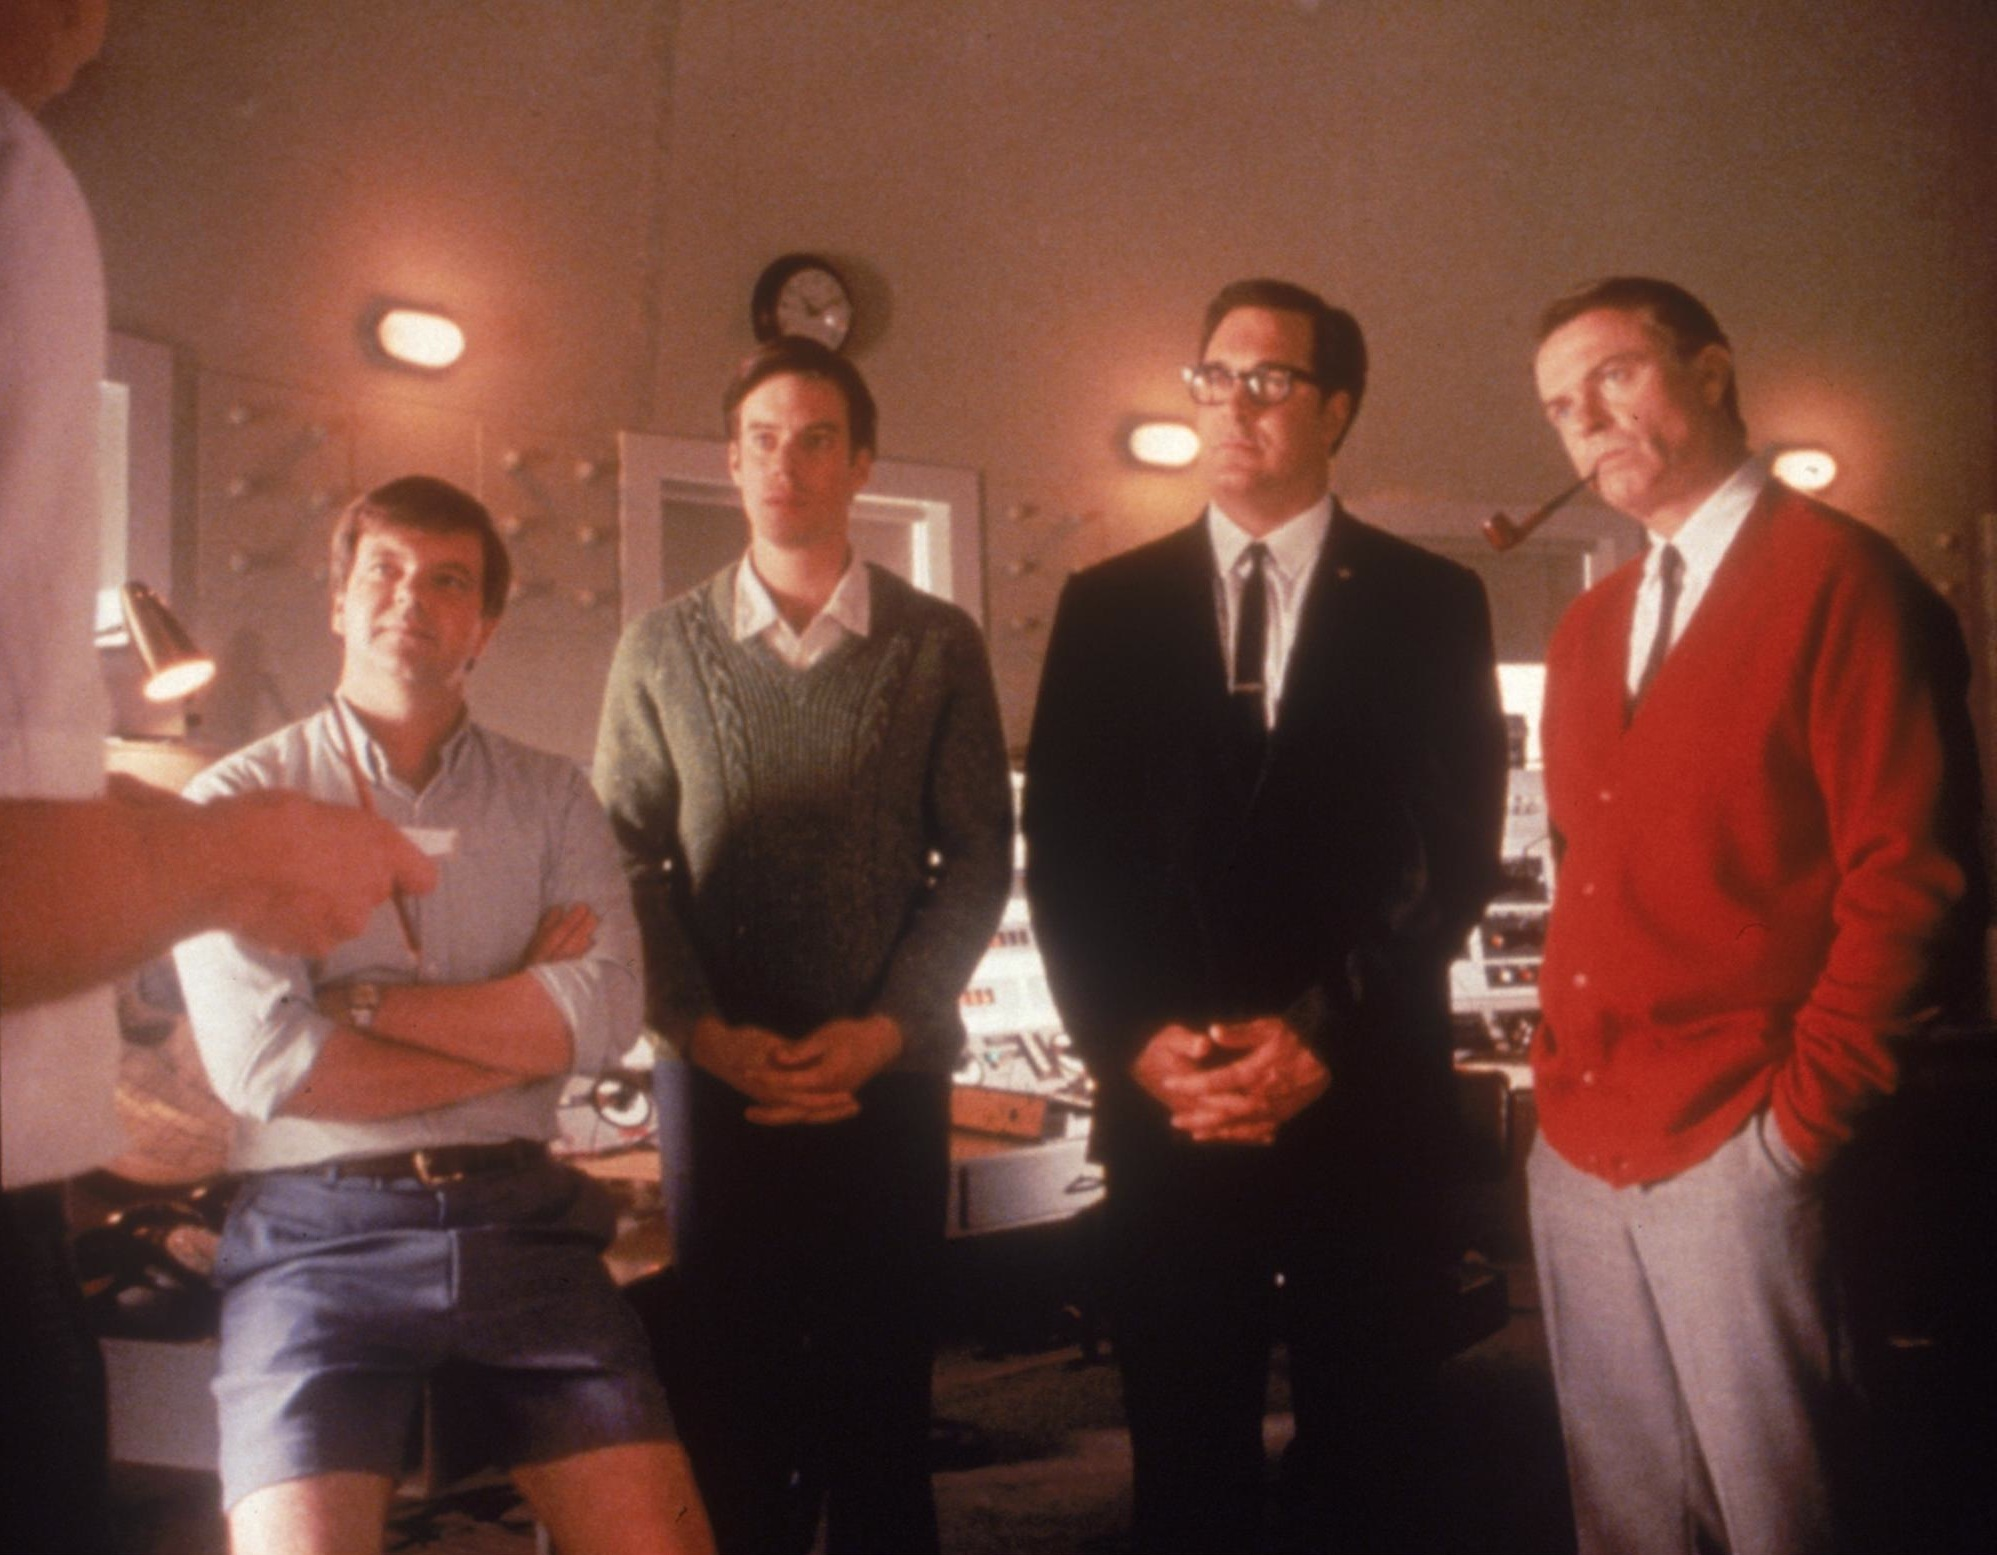 Sam Neill, Kevin Harrington, Tom Long, and Patrick Warburton in The Dish (2000)